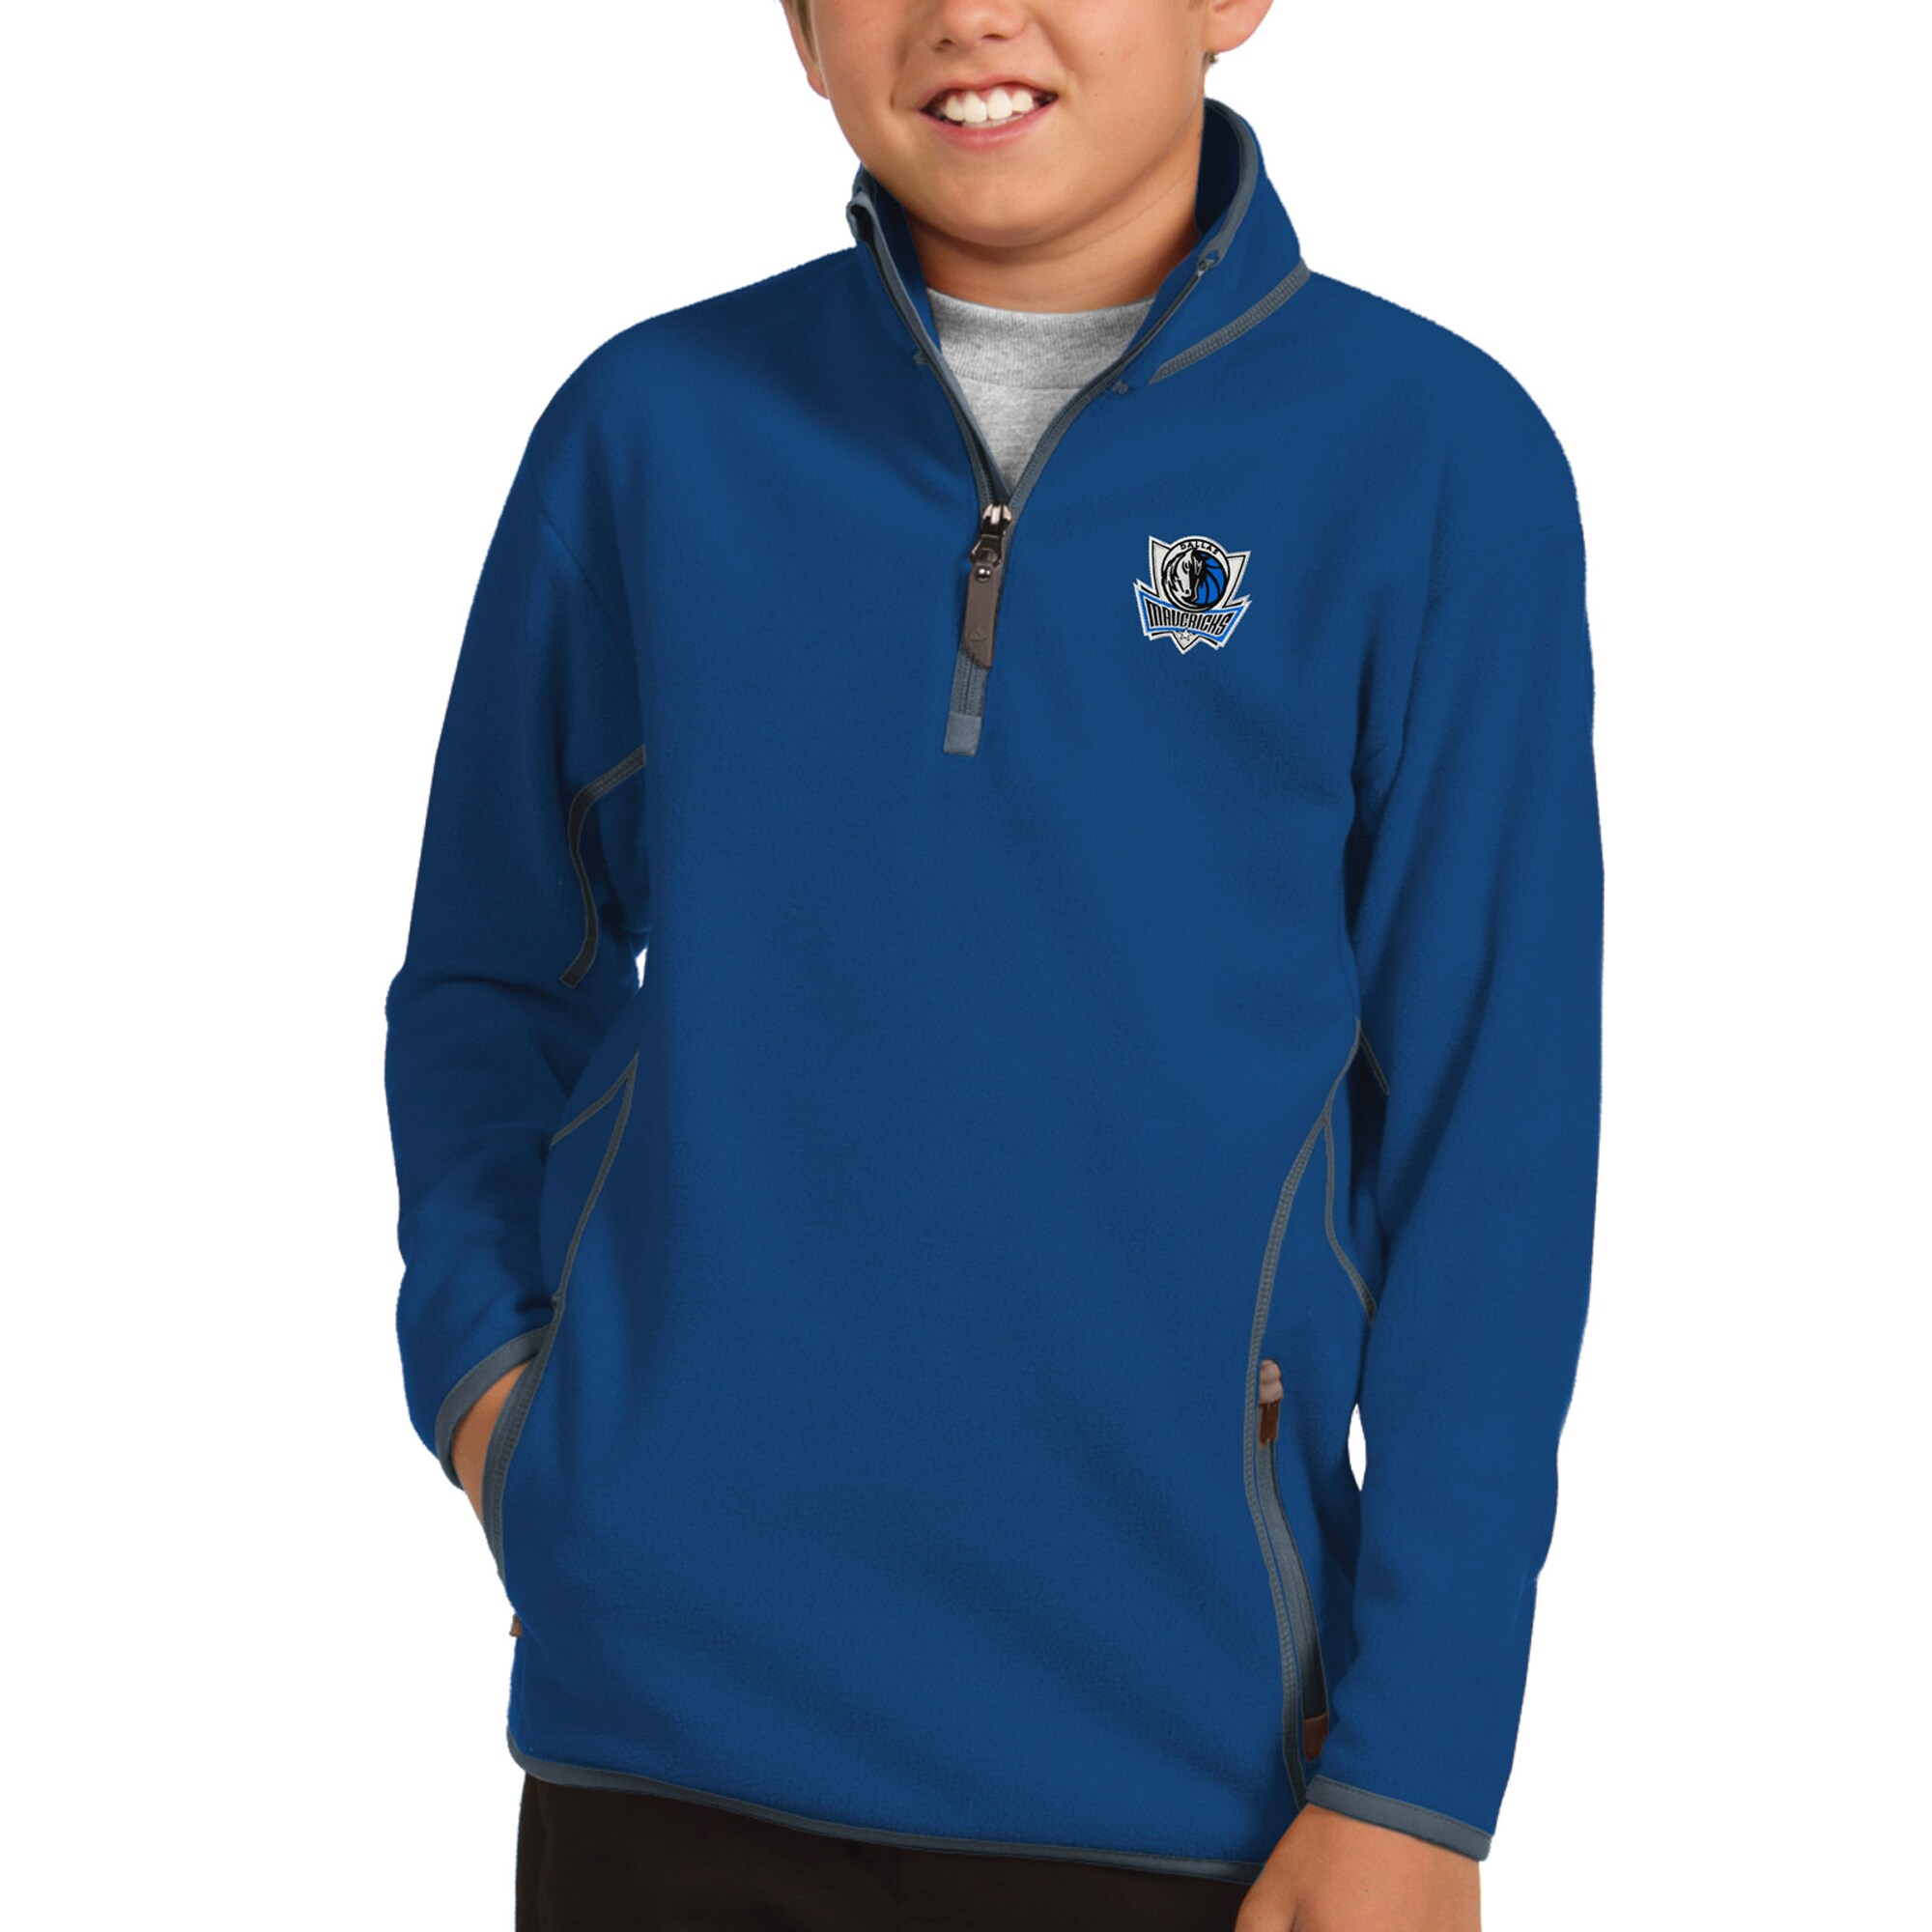 Dallas Mavericks Antigua Youth Ice Quarter-Zip Pullover Jacket - Royal